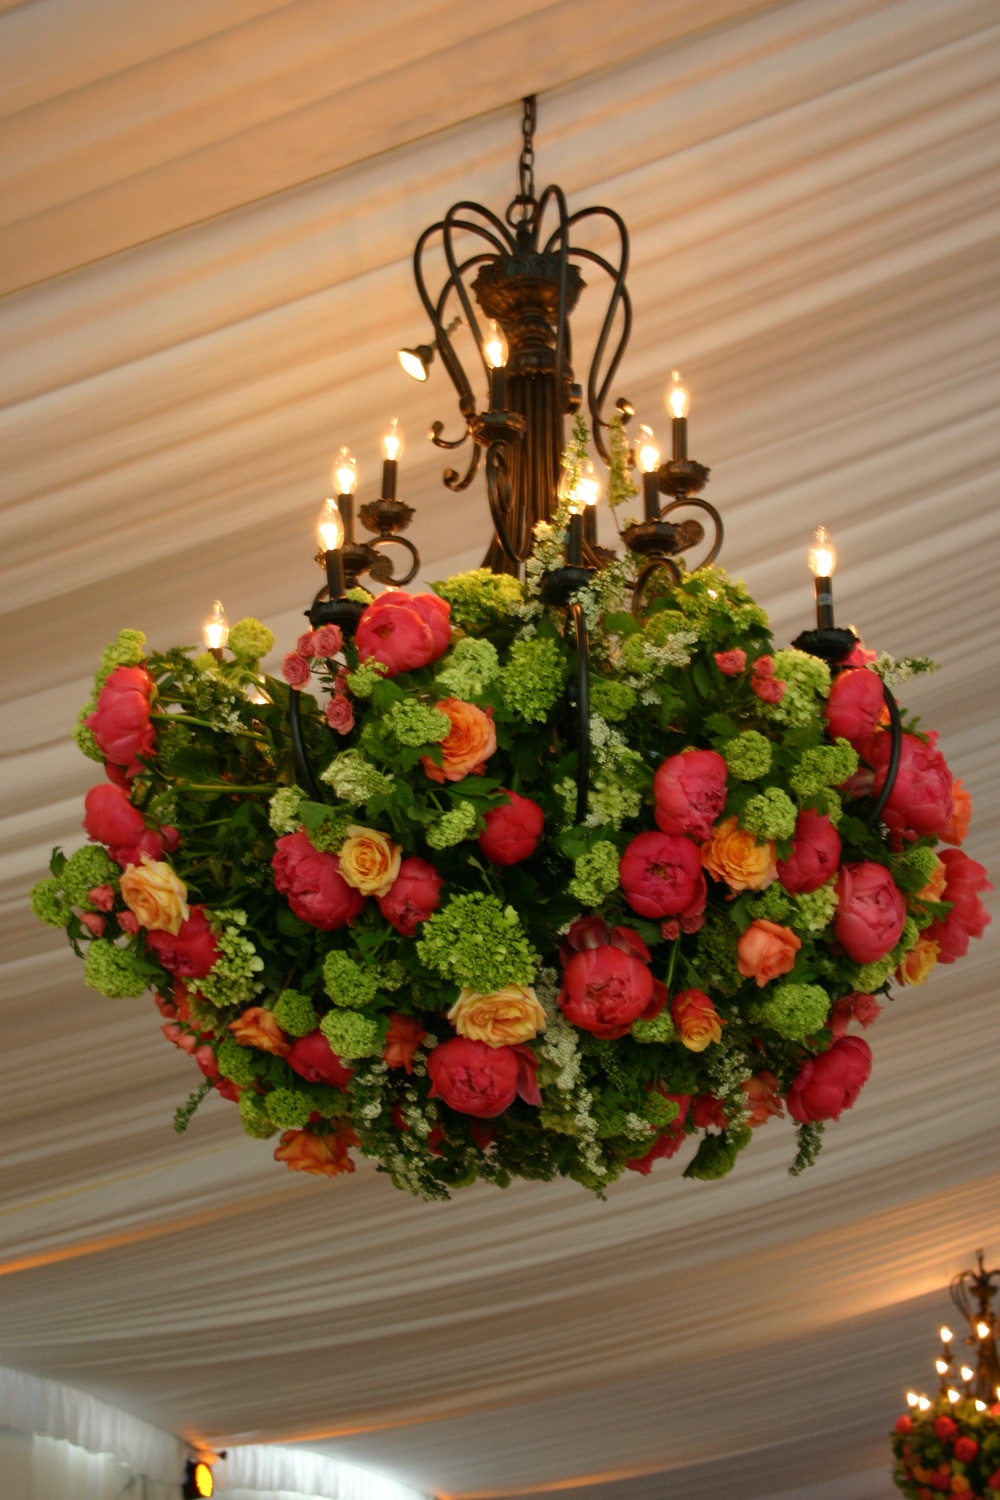 Chandelier flowers - Coral Charm Peonies, Viburnum, Mini Green Hydrangea, Roses and Spirea. Tent and Chandelier from Mahaffey.